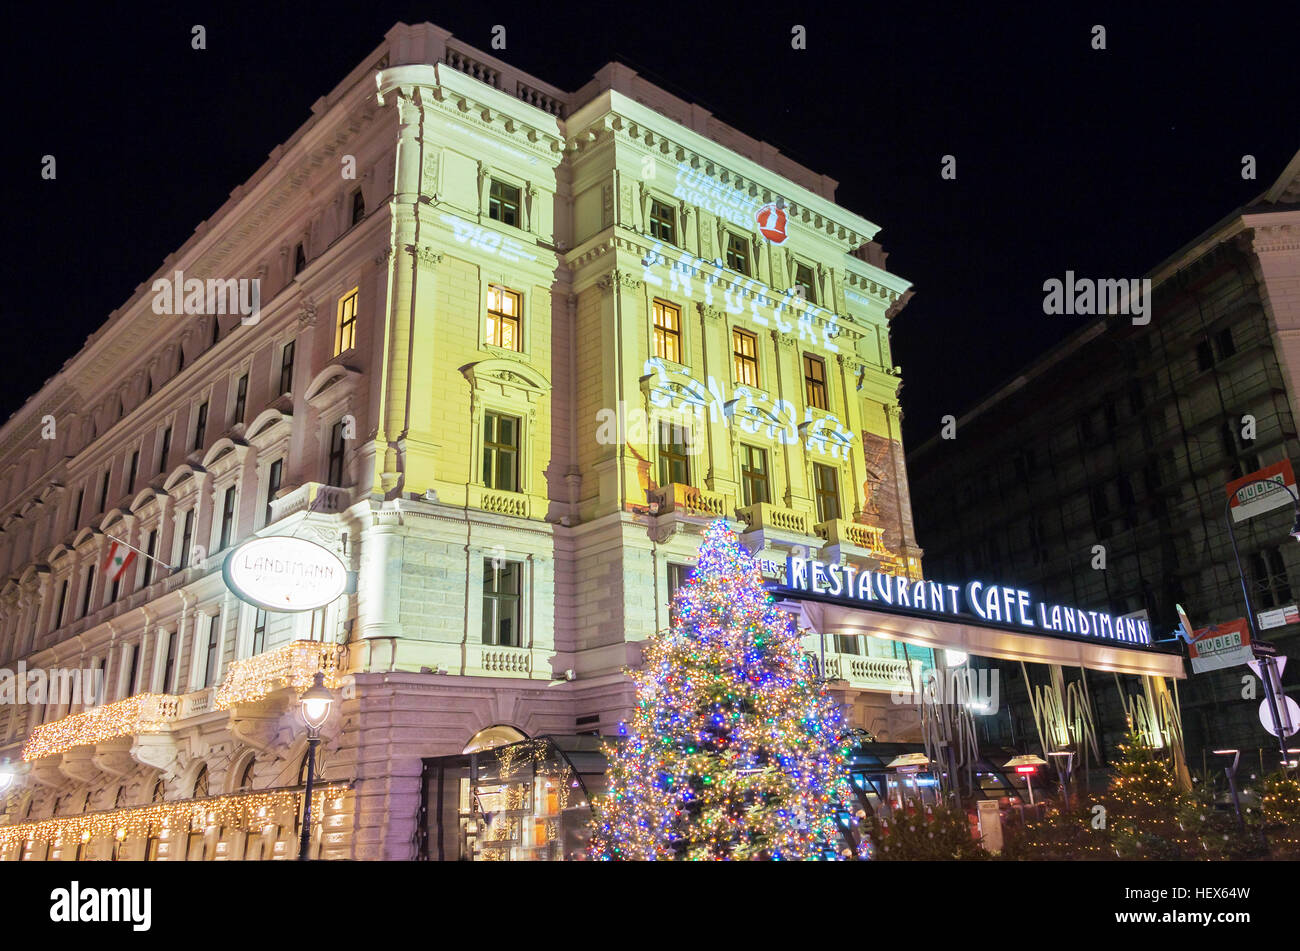 Vienna, Austria-December 10, 2016 : The  cafe Landtmann was founded in 1873.It is legendary Viennese institution - Stock Image